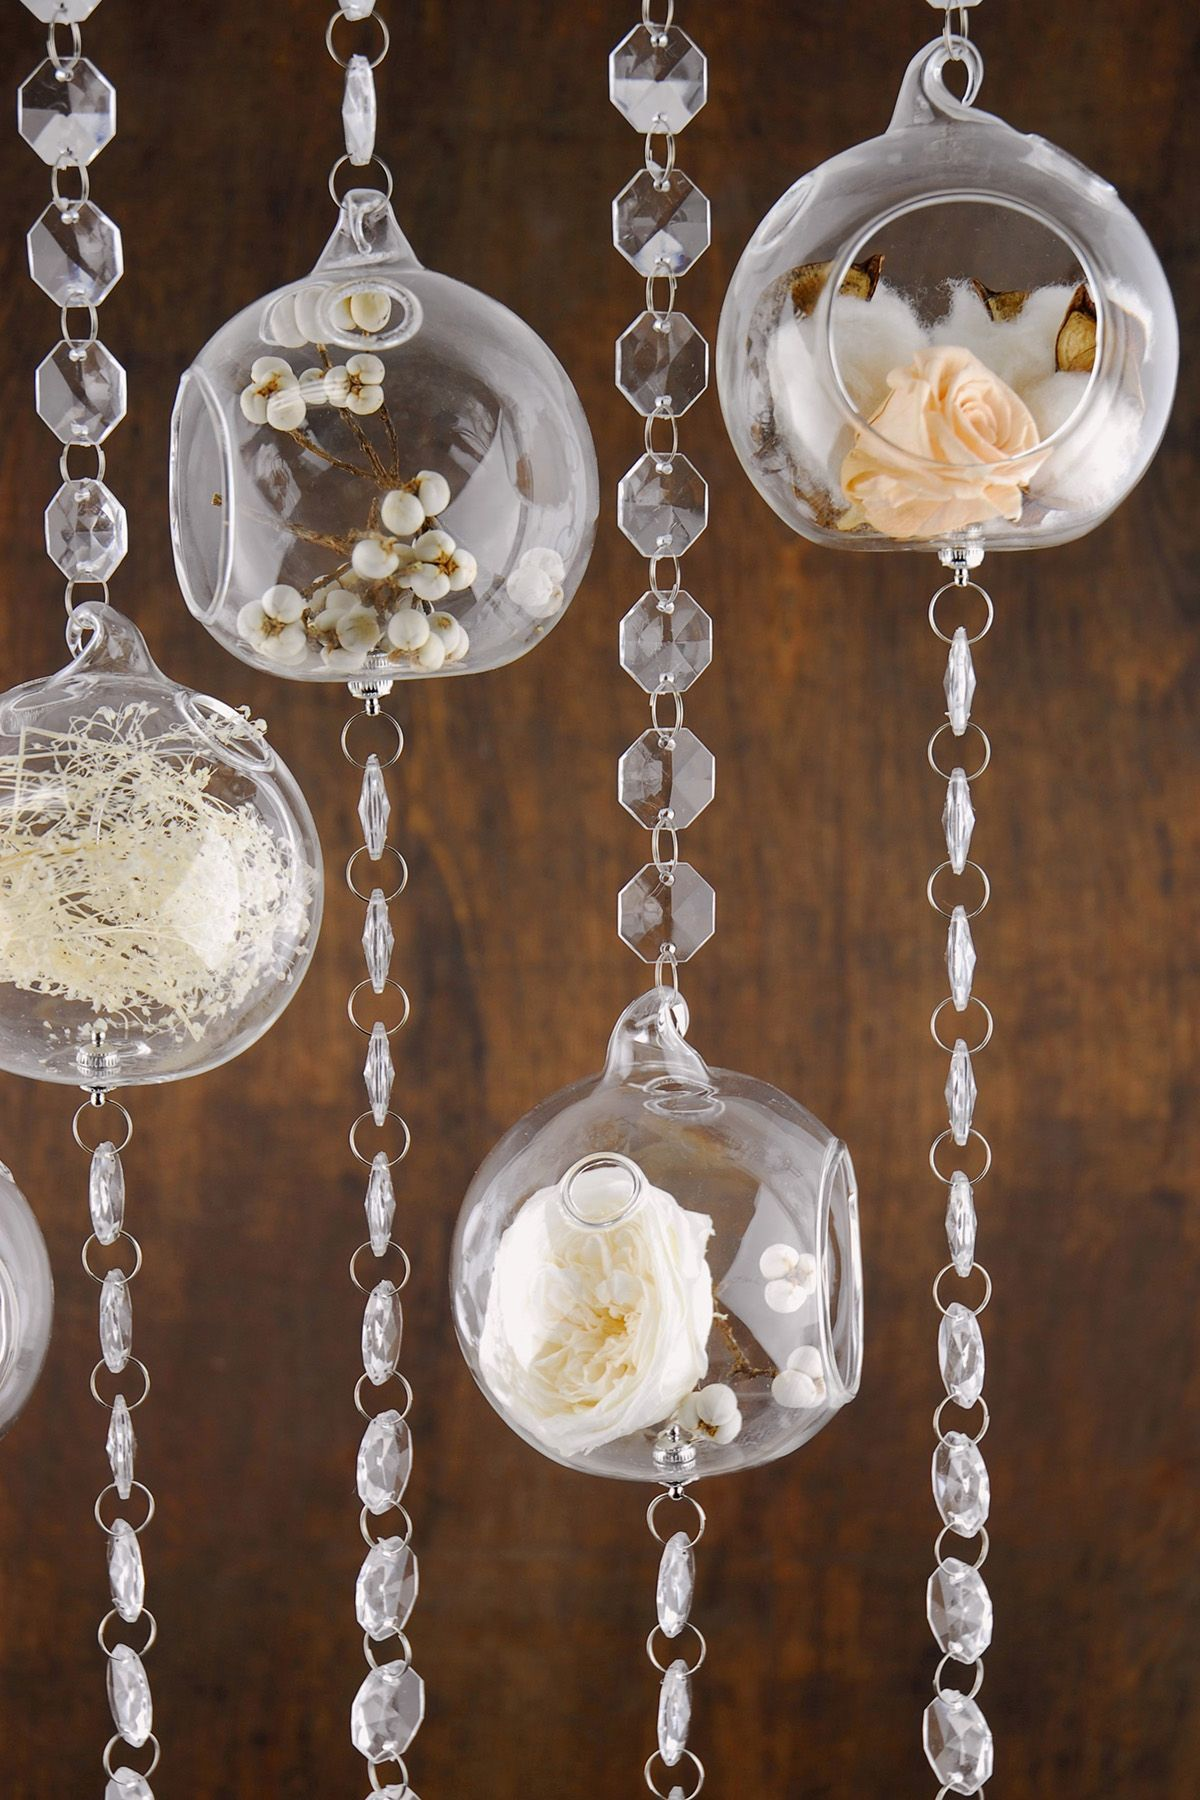 Tiny Chandelier Magnets For Hanging Terrariums Between Crystal - Chandelier crystals with magnets